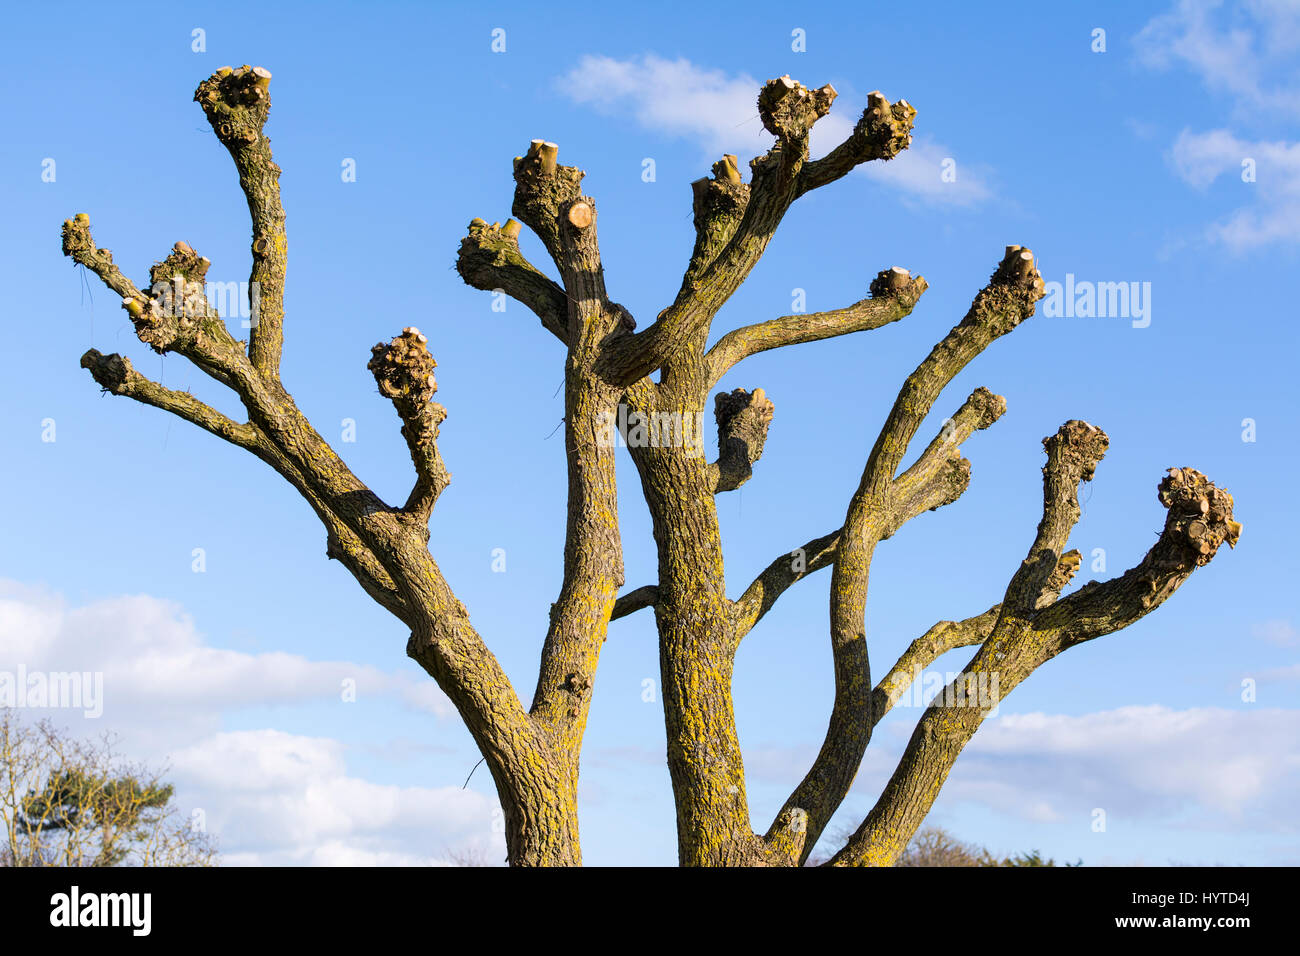 pruning stockfotos pruning bilder alamy. Black Bedroom Furniture Sets. Home Design Ideas